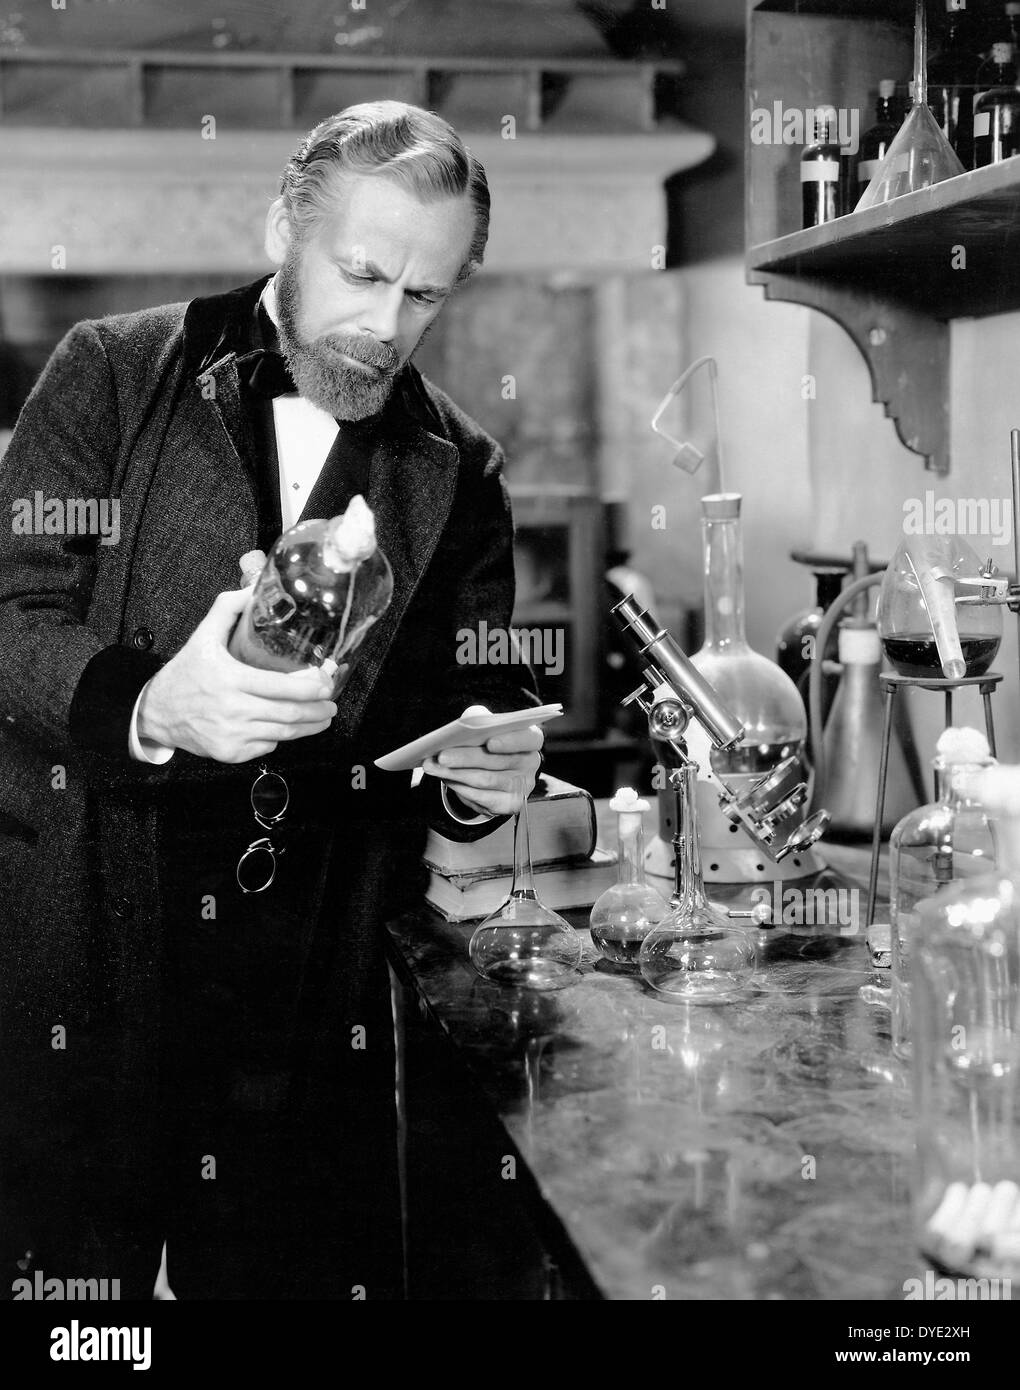 free louis pasteur essays Free and custom essays at essaypediacom take a look at written paper - louis pasteur biography.